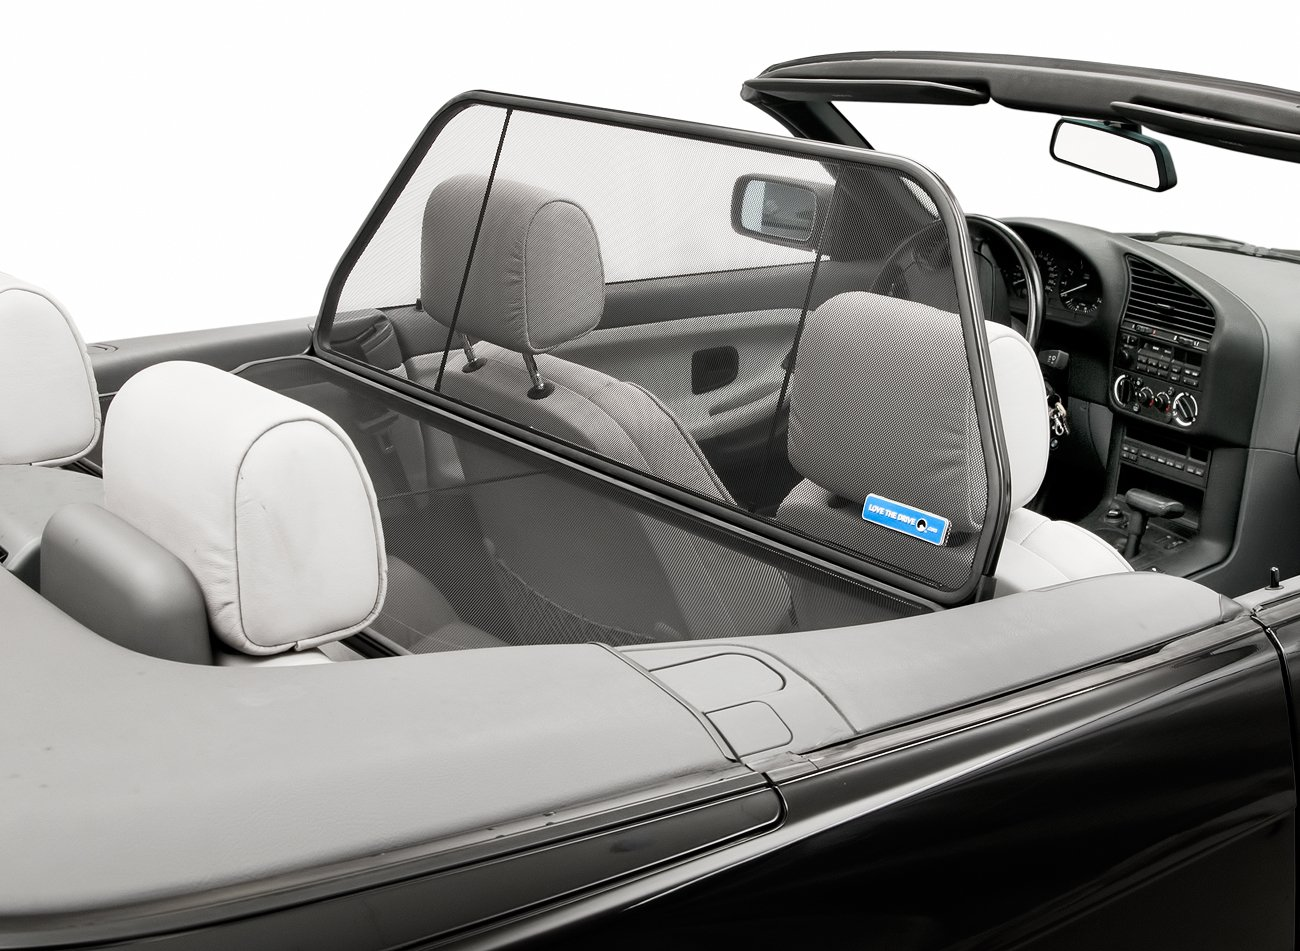 Bmw 3 Series 325 328 323 M3 E36 Convertible 1993 To 1999 Love The Drive Wind Deflector Deflectors Are Known Also As Screen